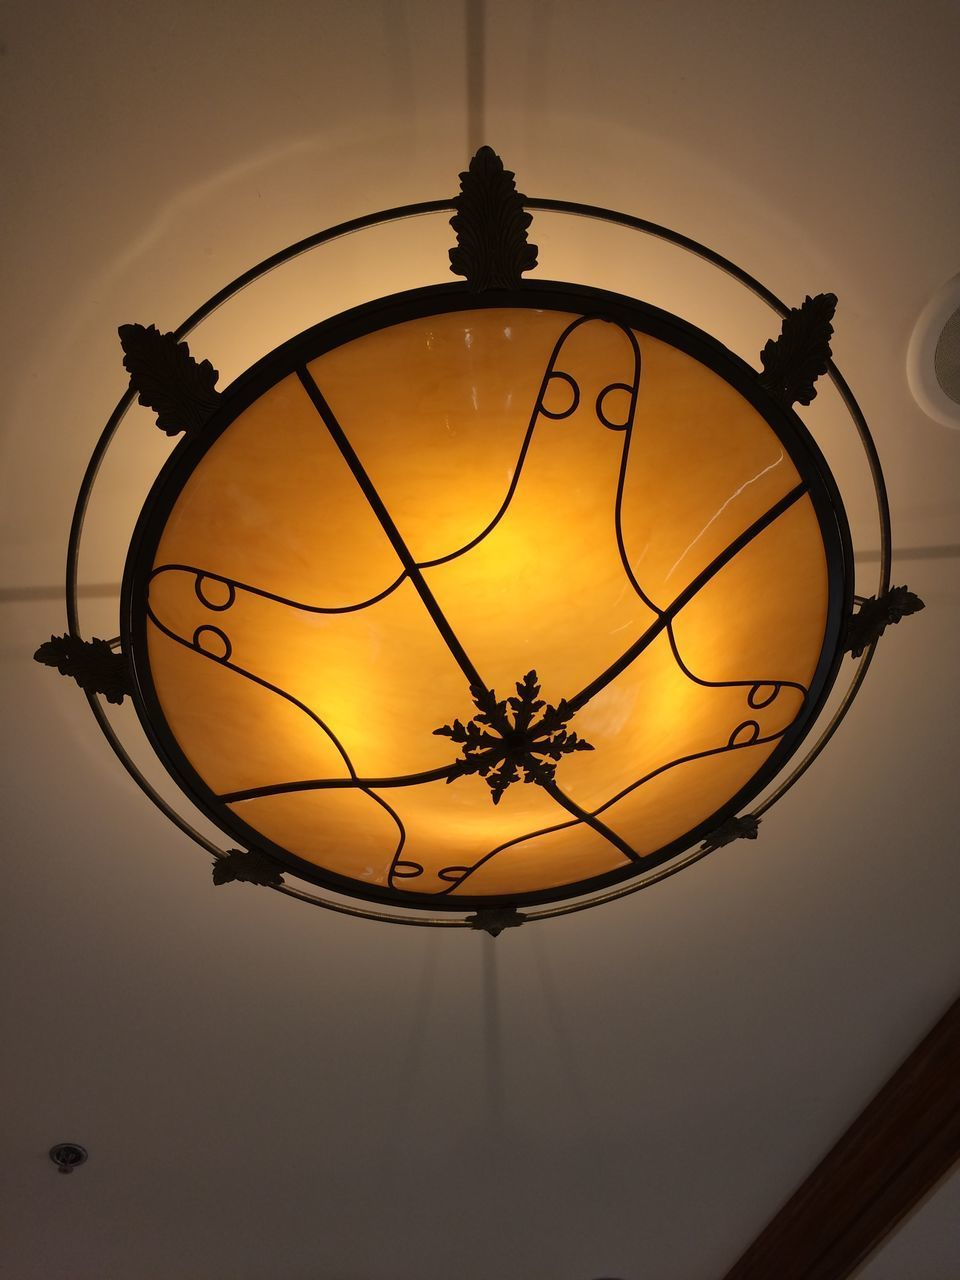 lighting equipment, low angle view, no people, illuminated, sport, light bulb, indoors, hanging, close-up, basketball hoop, day